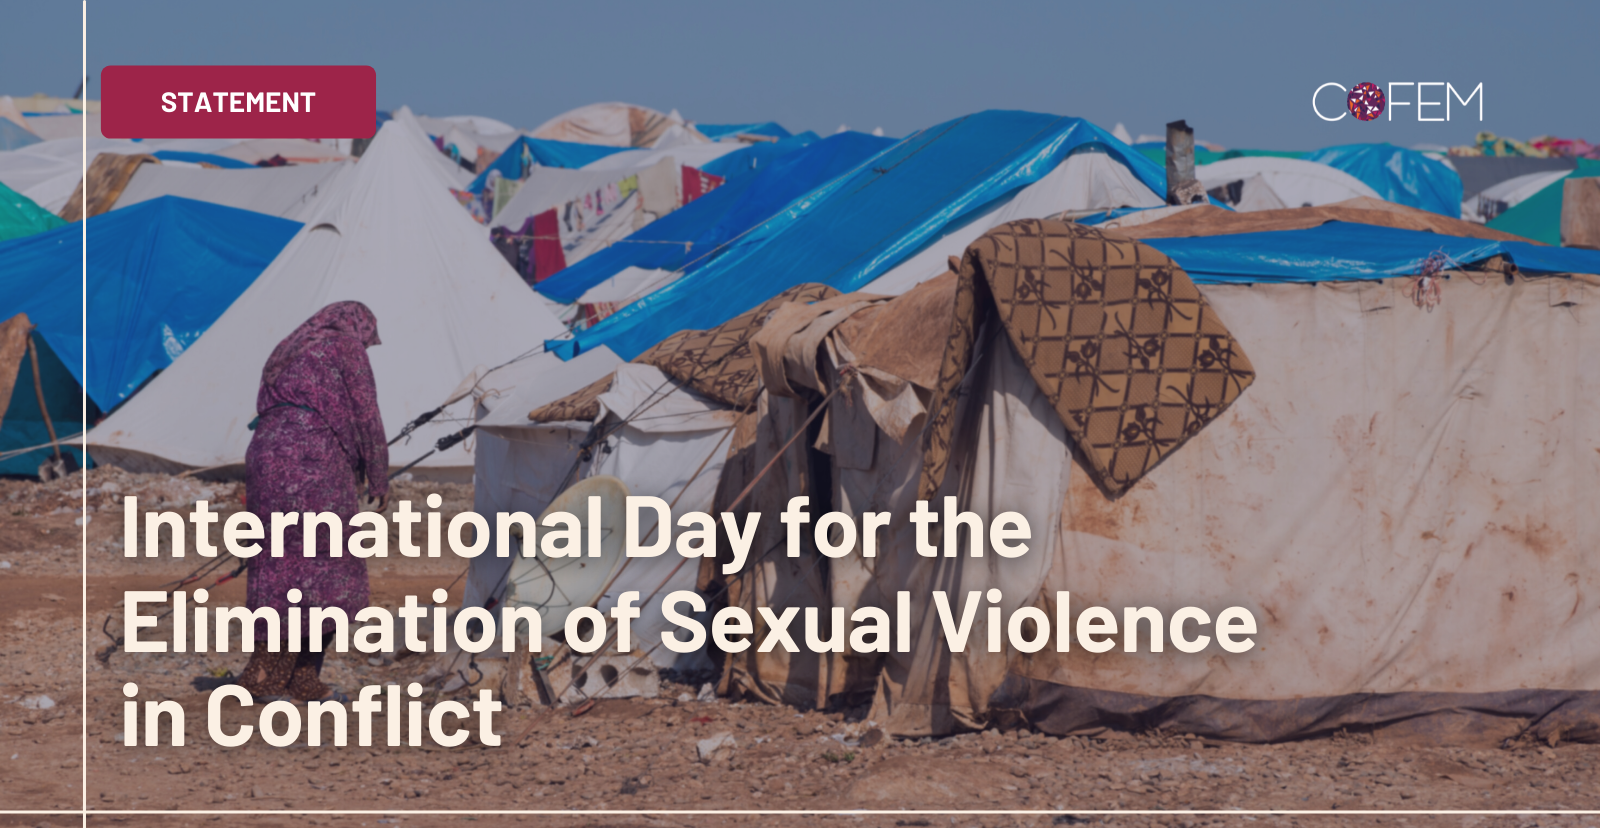 """Image with blurred background of conflict tents with text over lay saying """"International Day of Elimination of Sexual Violence in Conflict"""" With the COFEM logo and website on the right side."""